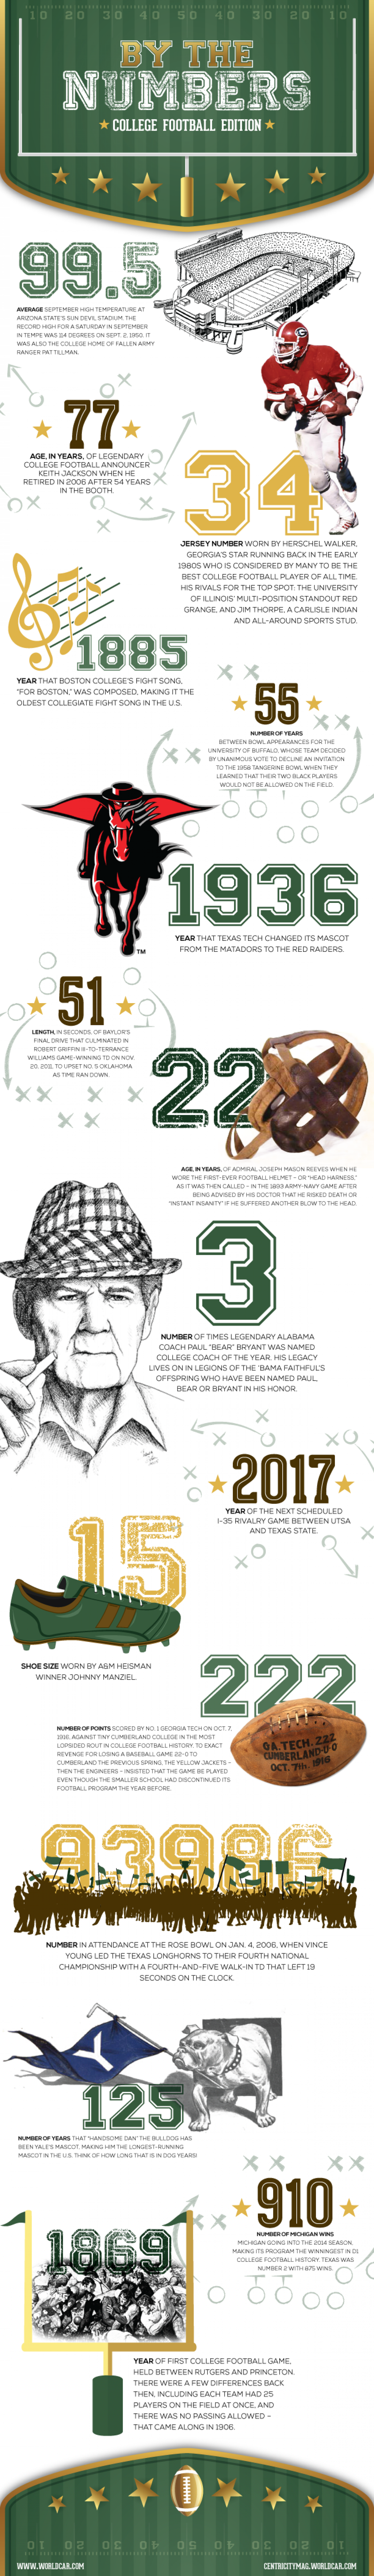 BY THE NUMBERS: COLLEGE FOOTBALL Infographic